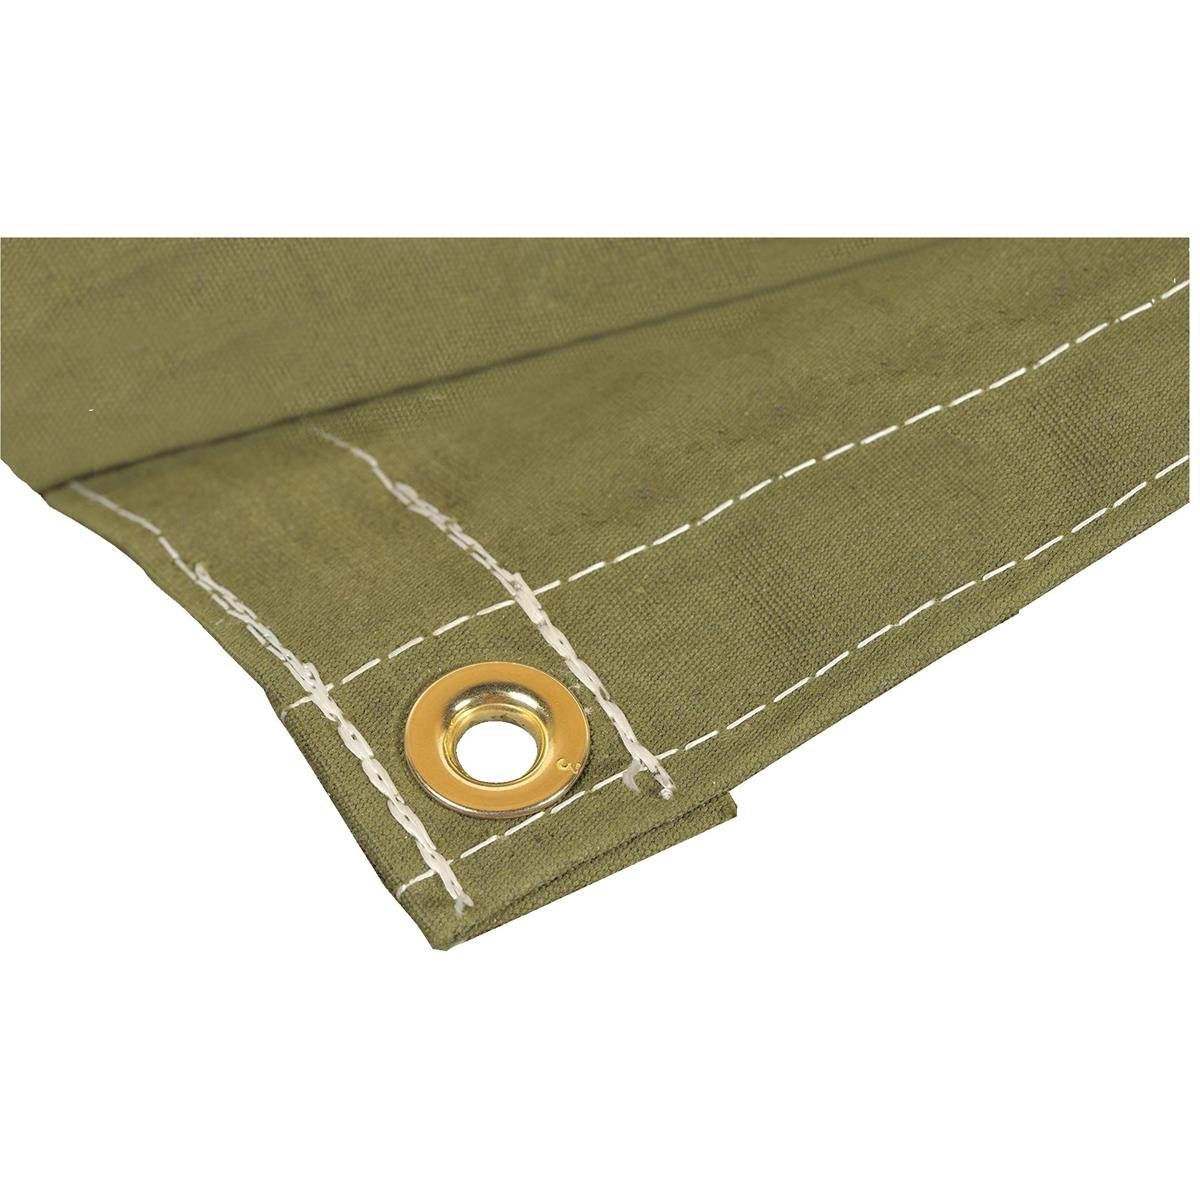 GEMPLER'S Weather Tough Super Tarp, Large 10'X20' Olive Ultra-Strong Rugged Fully Breathable Waterproof Poly/Canvas Blend Tarpaulin with Brass Spur Grommets